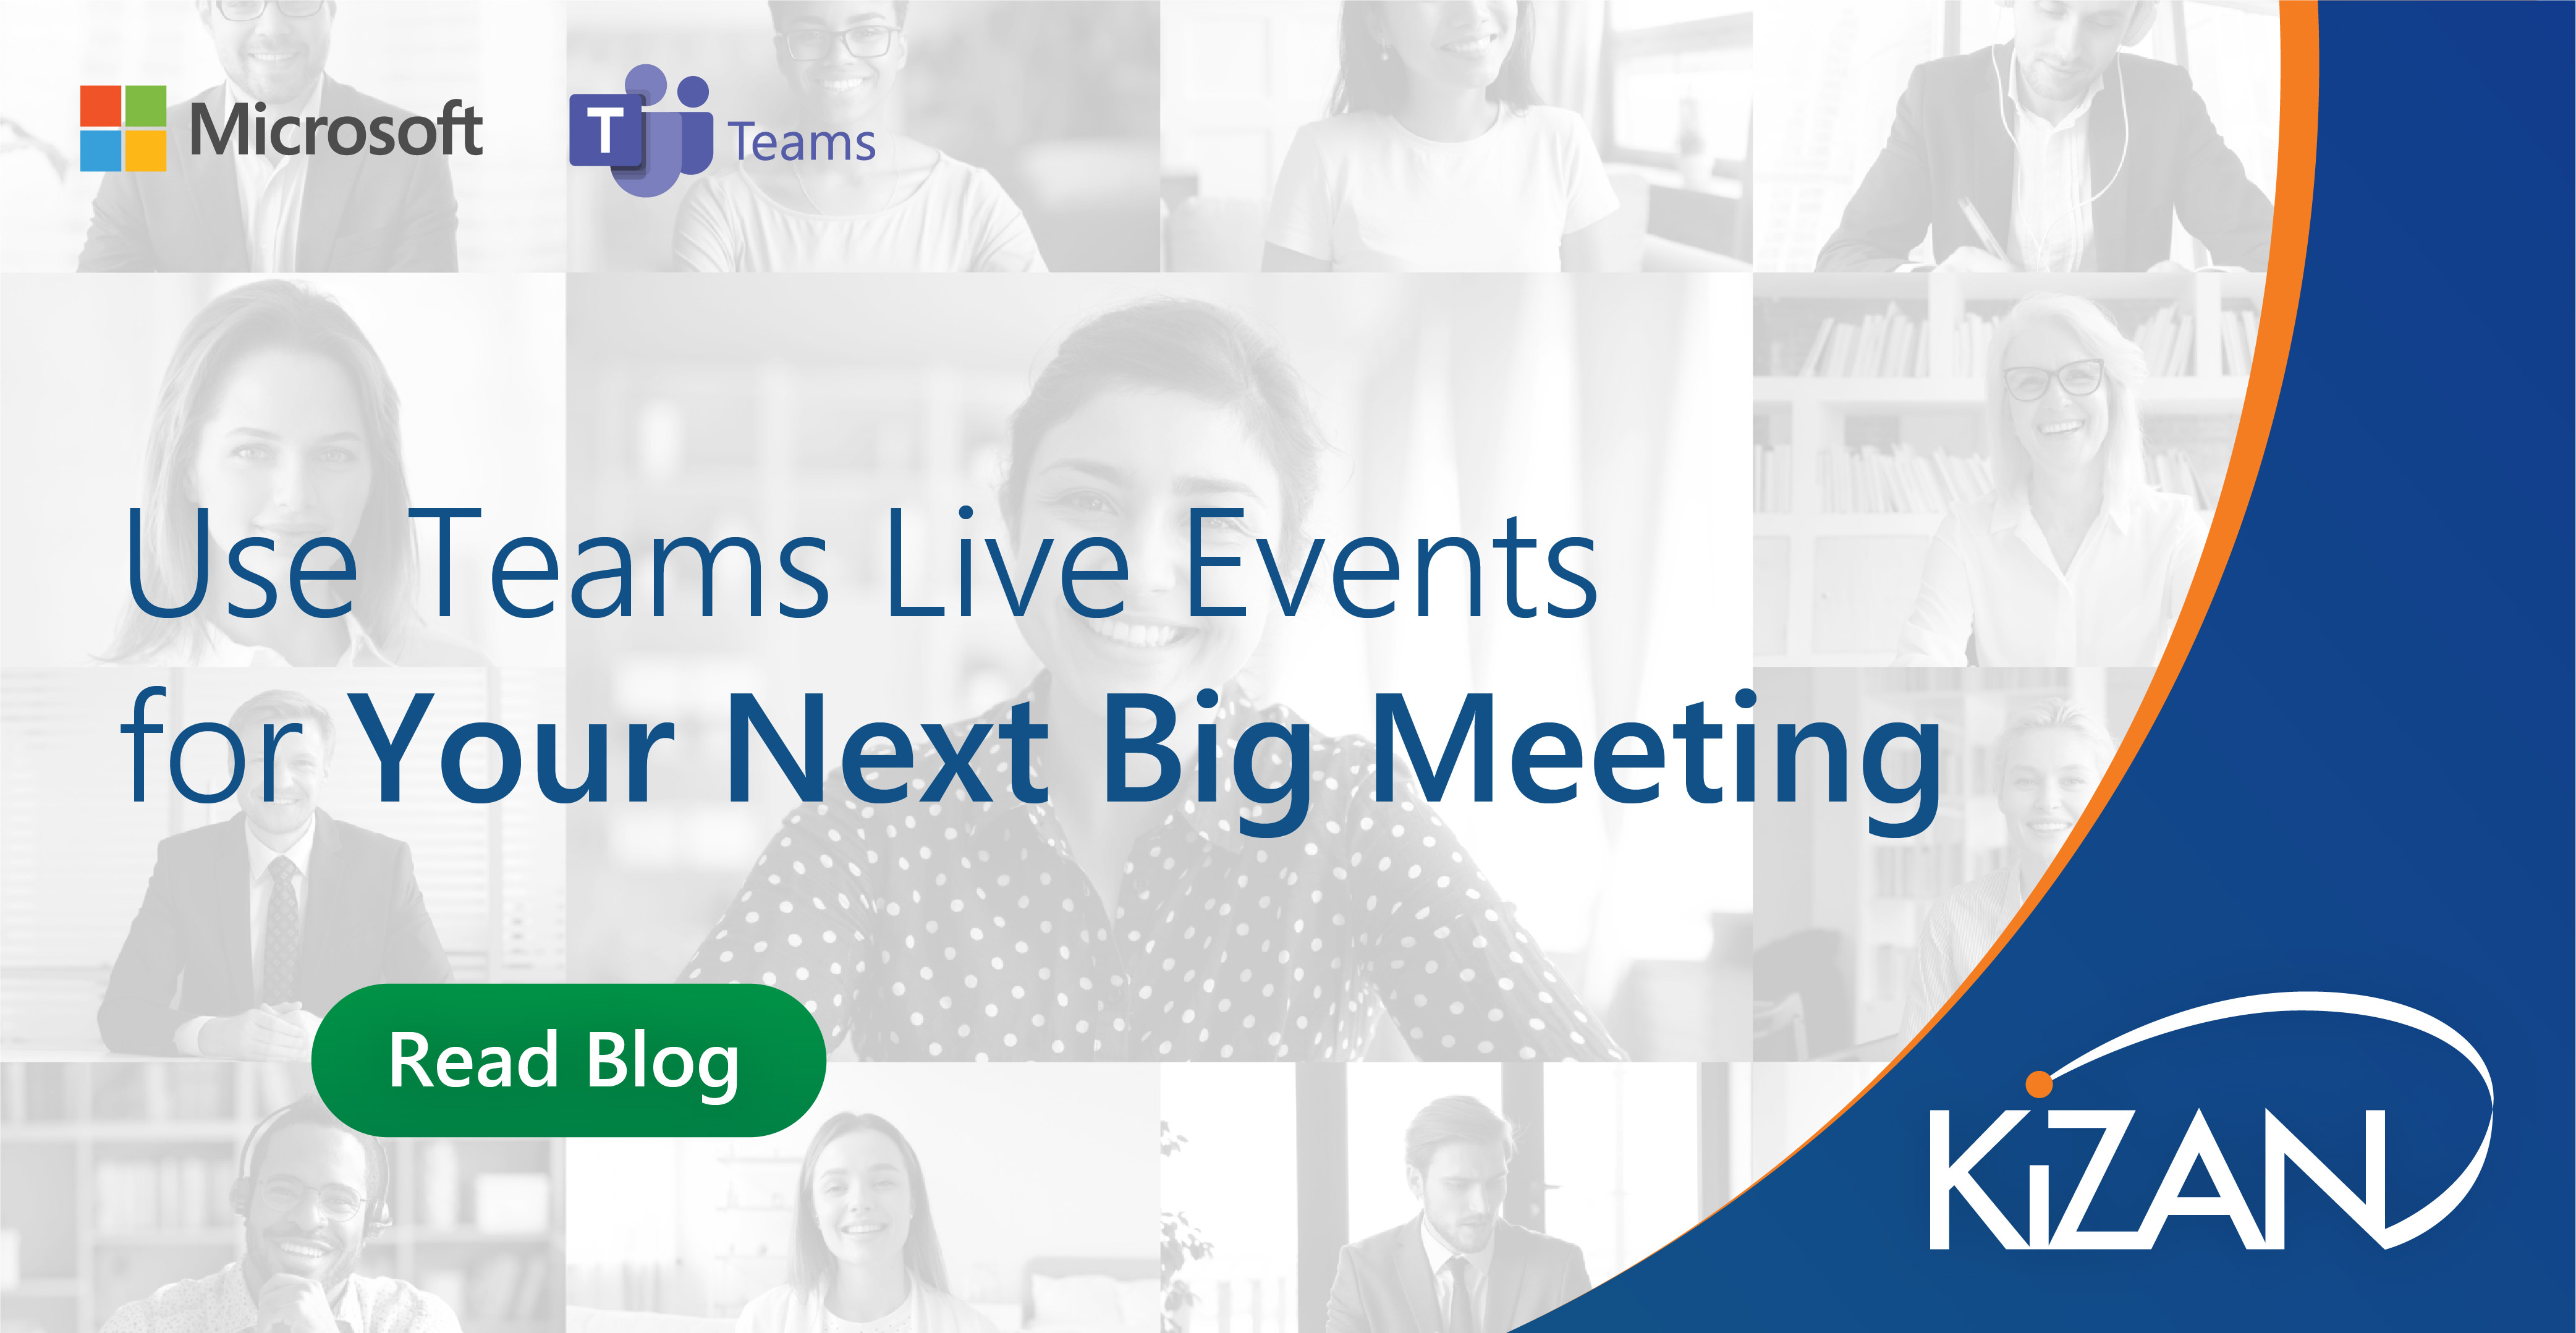 Use Teams Live Events for Your Next Big Meeting